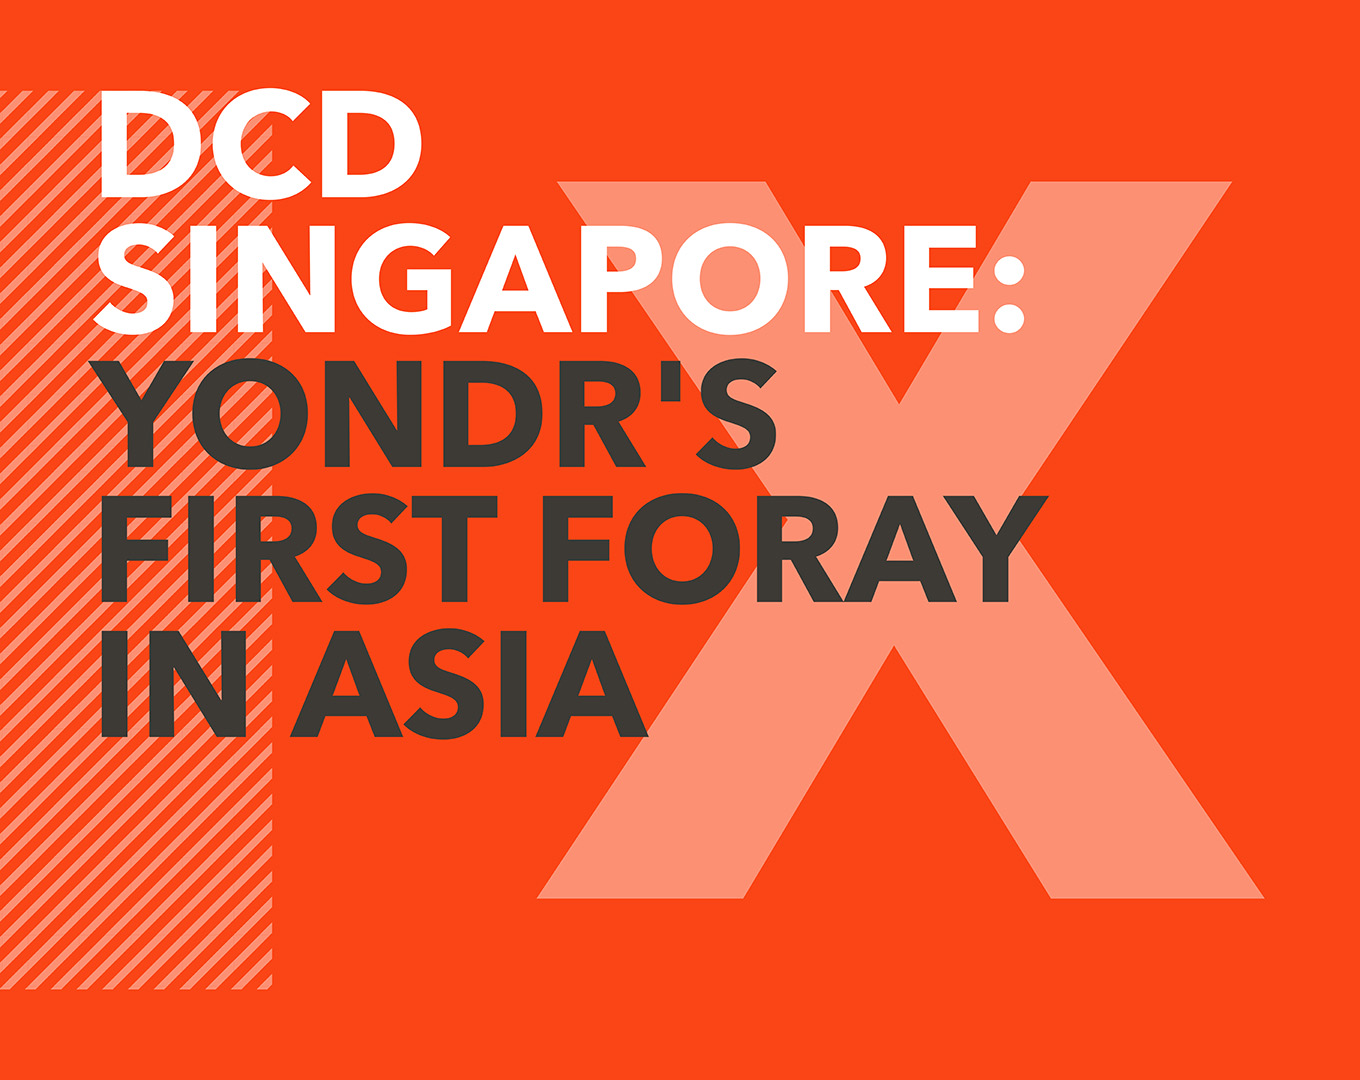 DCD Singapore: Yondr's first foray in Asia